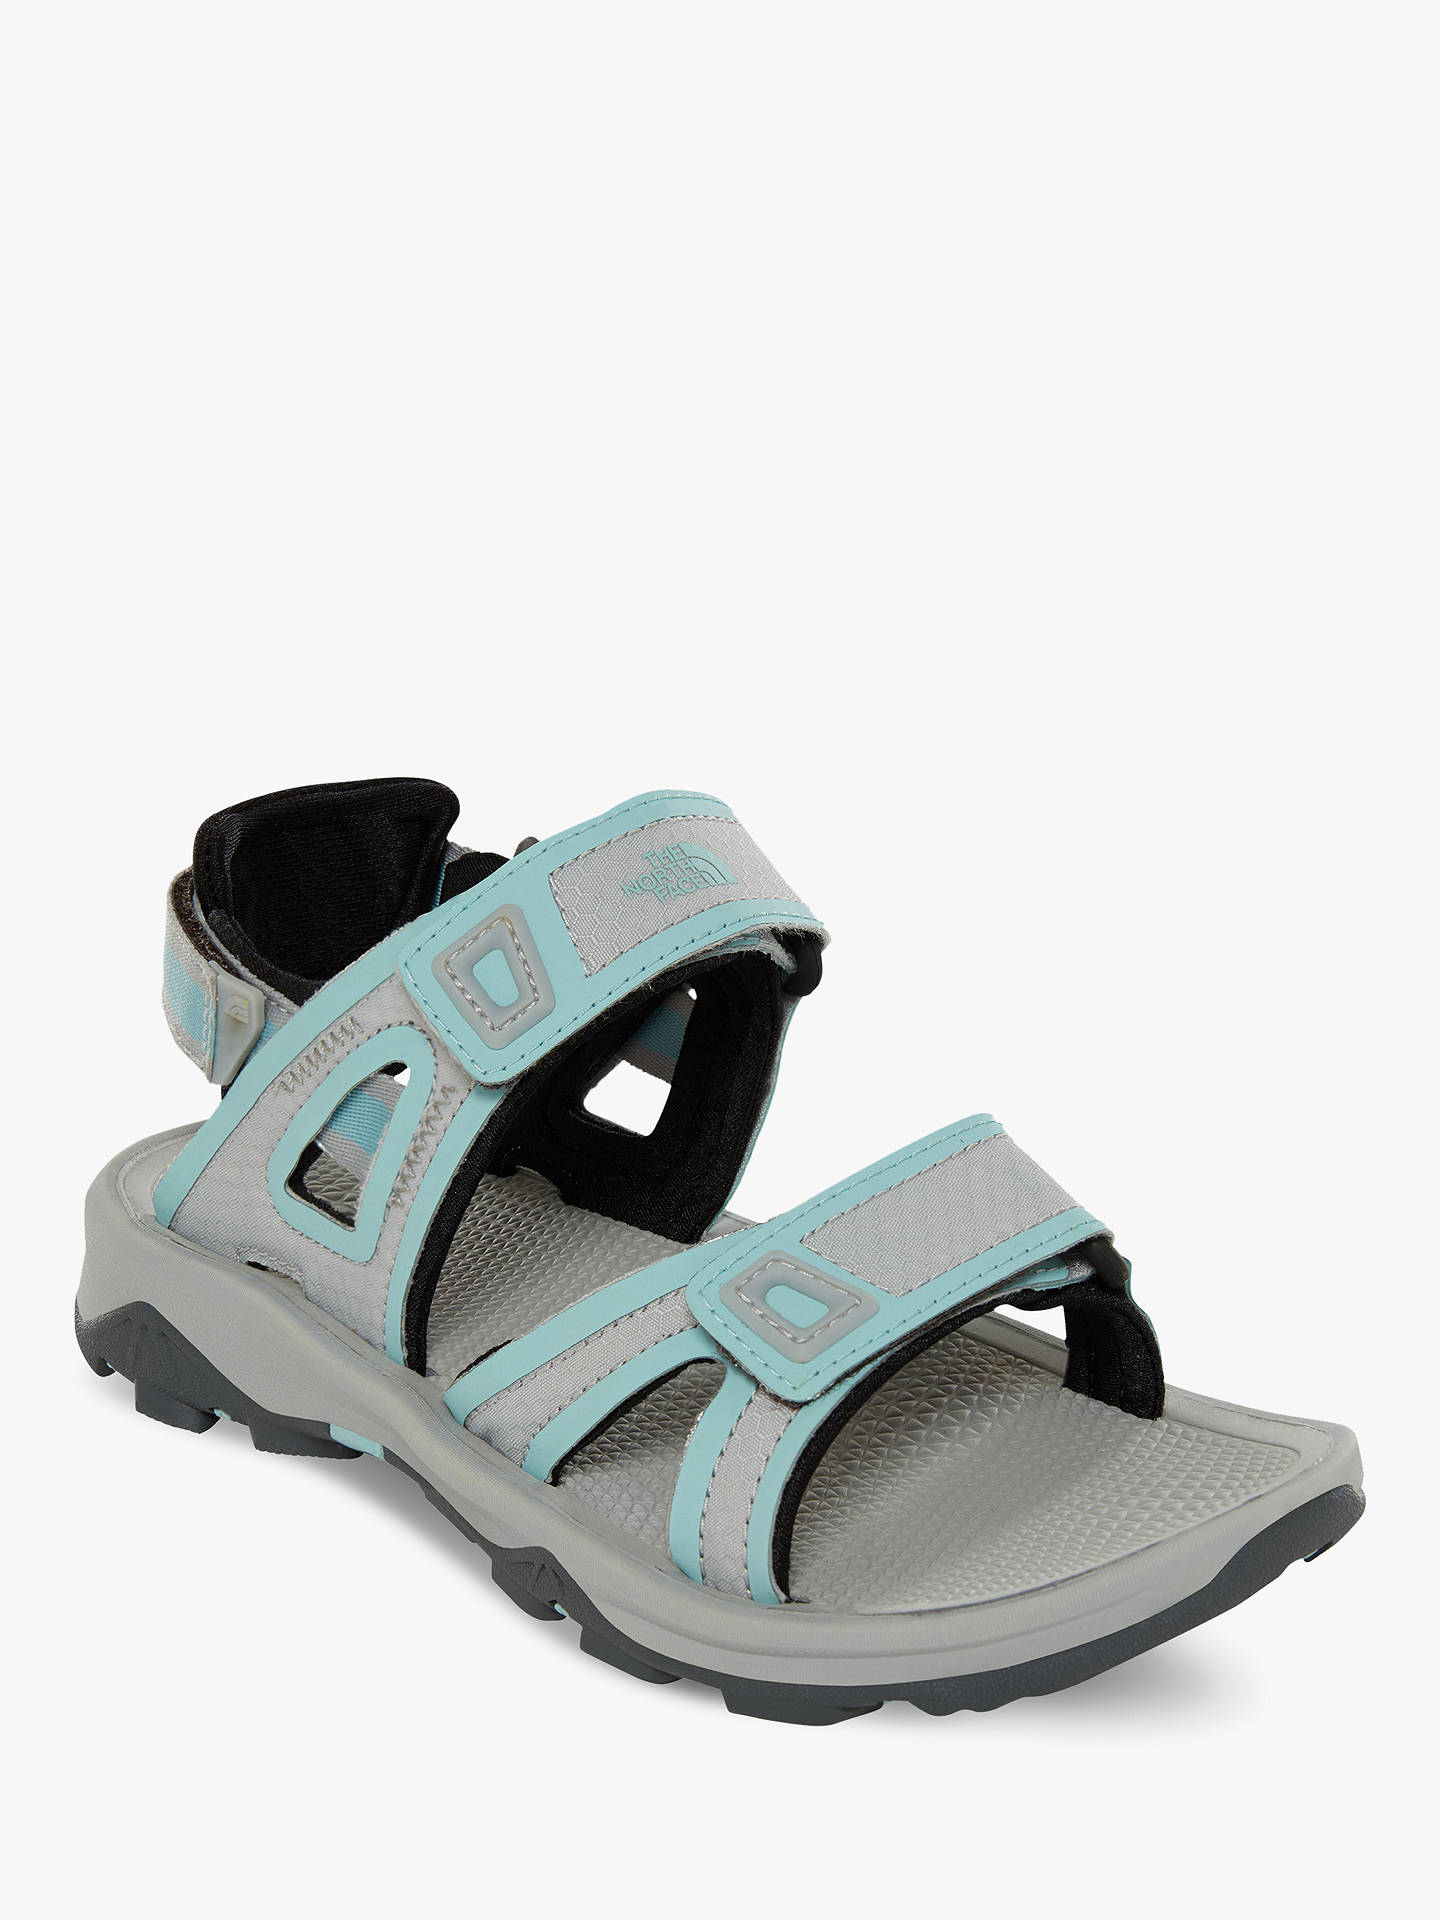 806e64928 The North Face Hedgehog II Women's Sandals, High Rise Grey/Canal ...